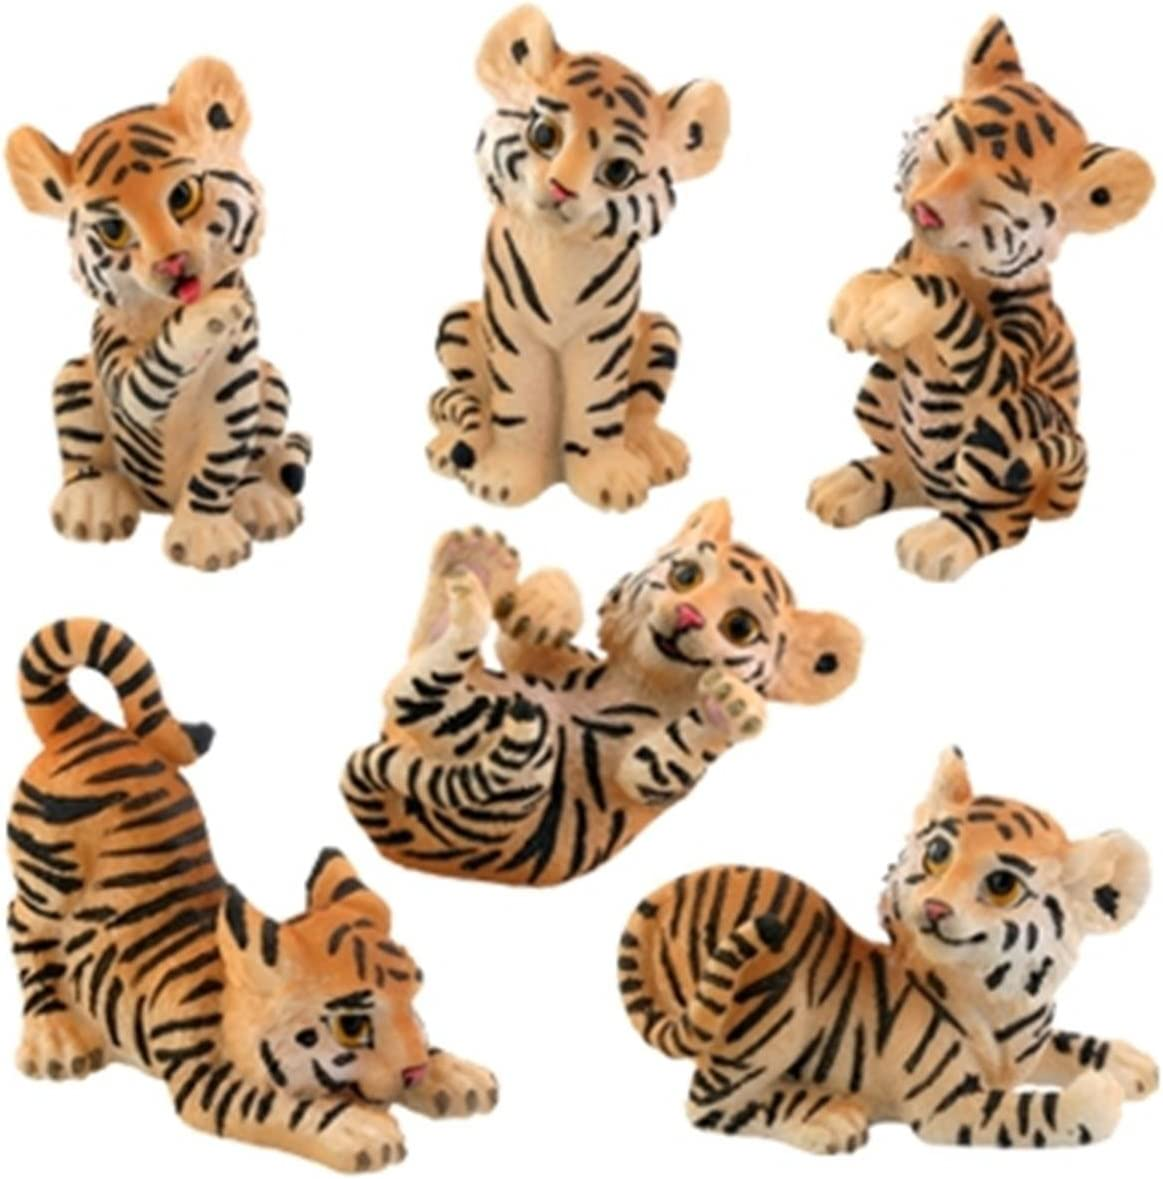 Amazon Com Cute Tiger Cubs Statue Figurines Set Of 6 Collection Home Kitchen